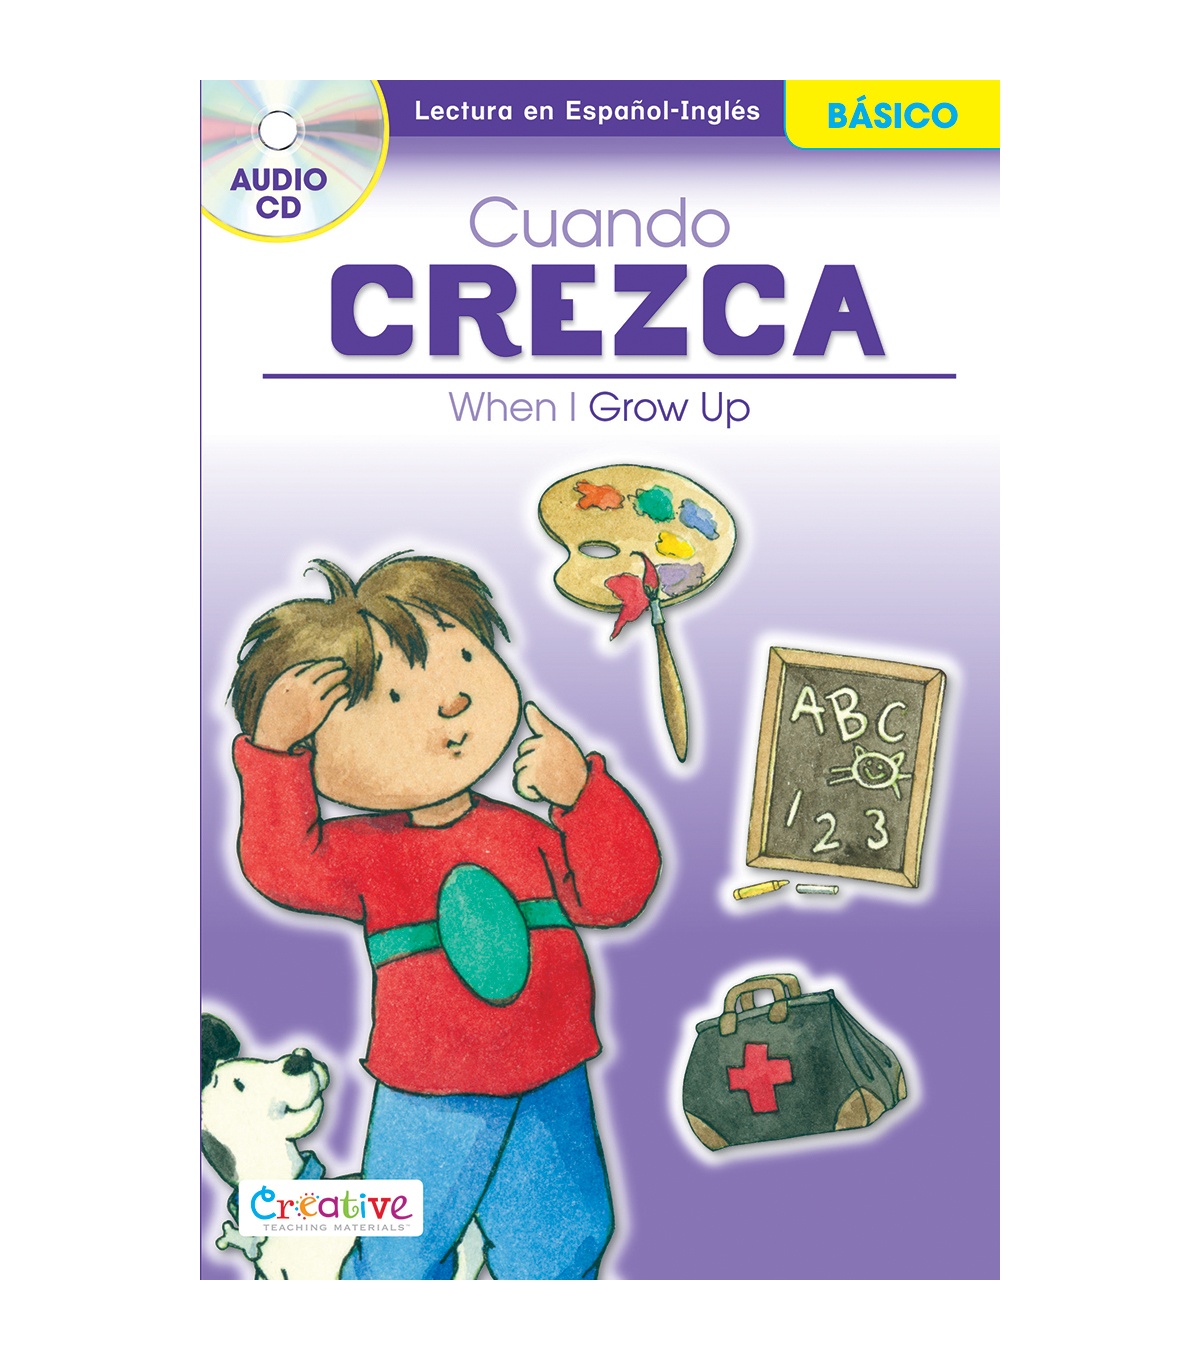 Pbs Publishing Spanish-English Book With CD-When I Grow Up